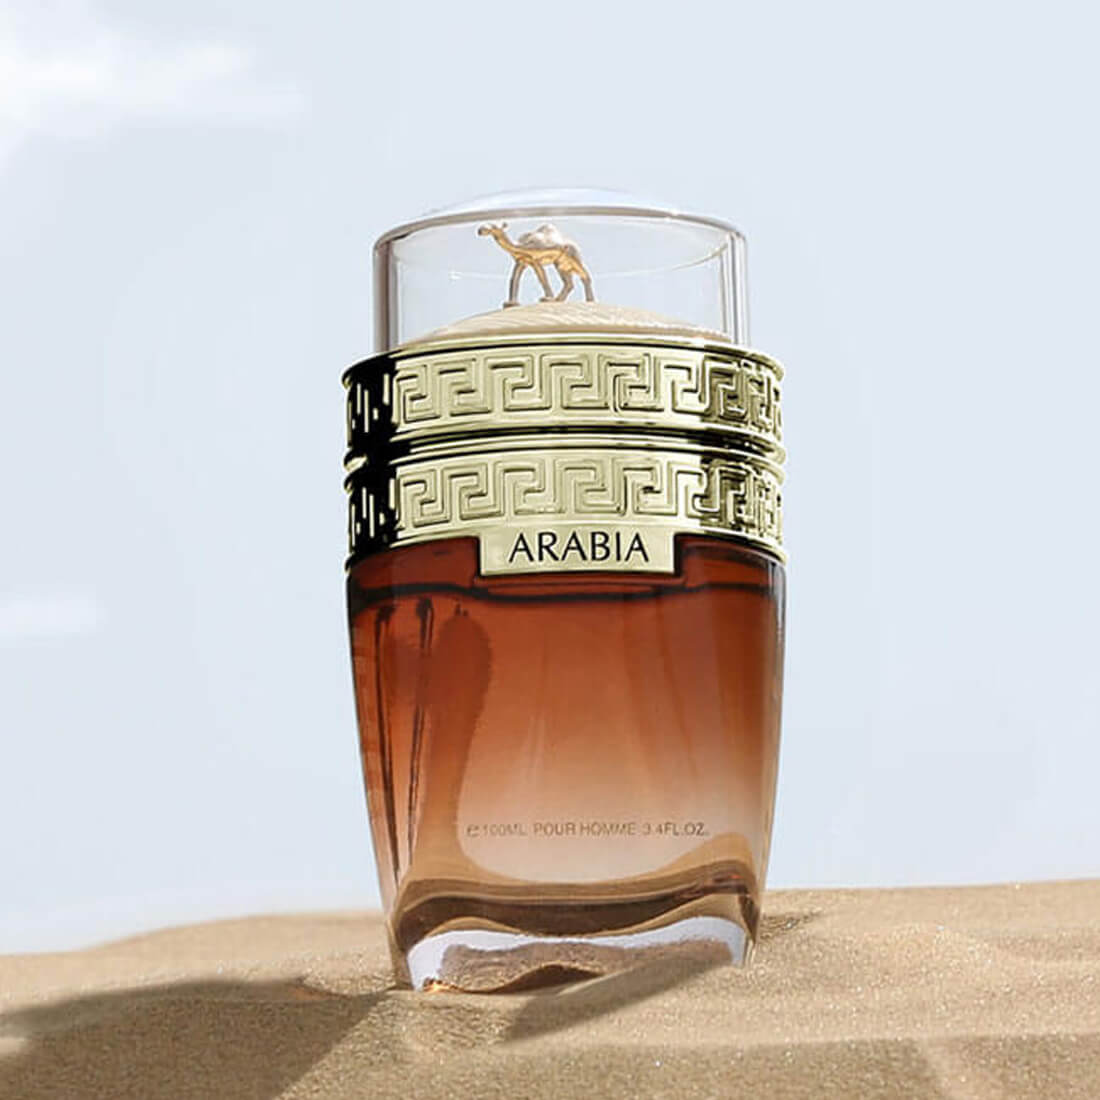 Le Chameau Arabia Pour Homme Eau De Toilette For Men - 100ml